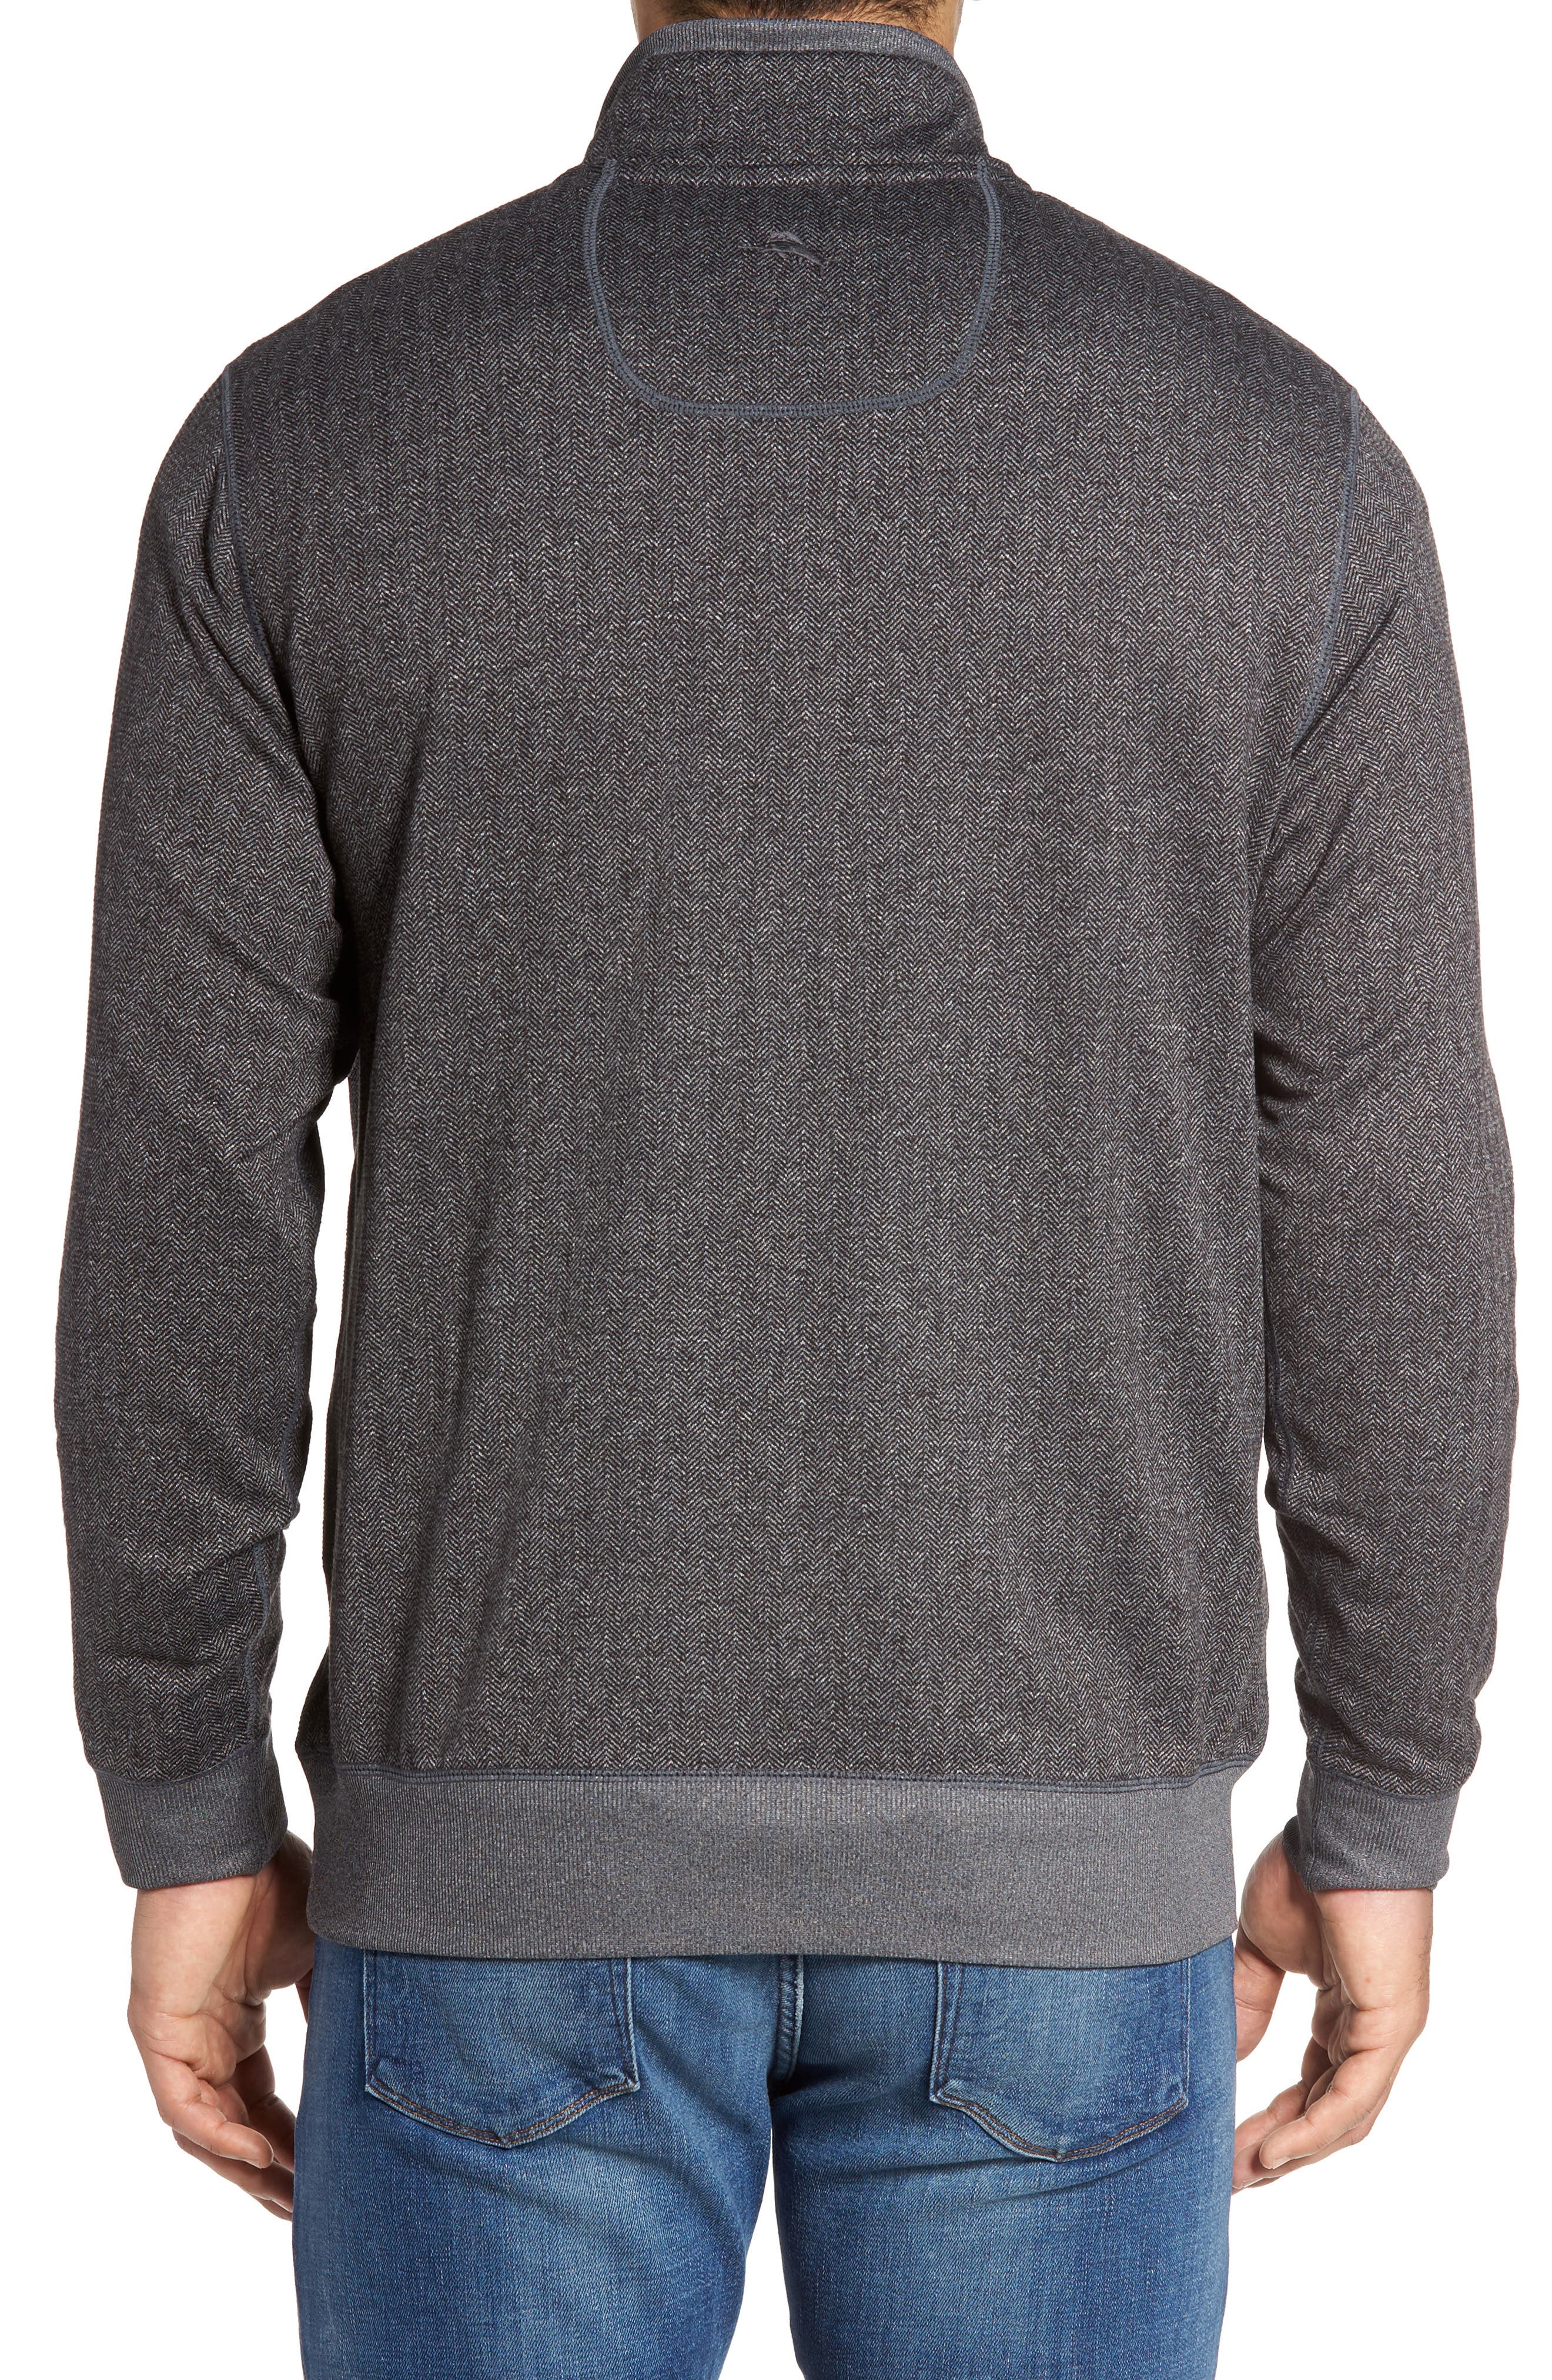 Pro Formance Quarter Zip Sweater,                             Alternate thumbnail 3, color,                             050